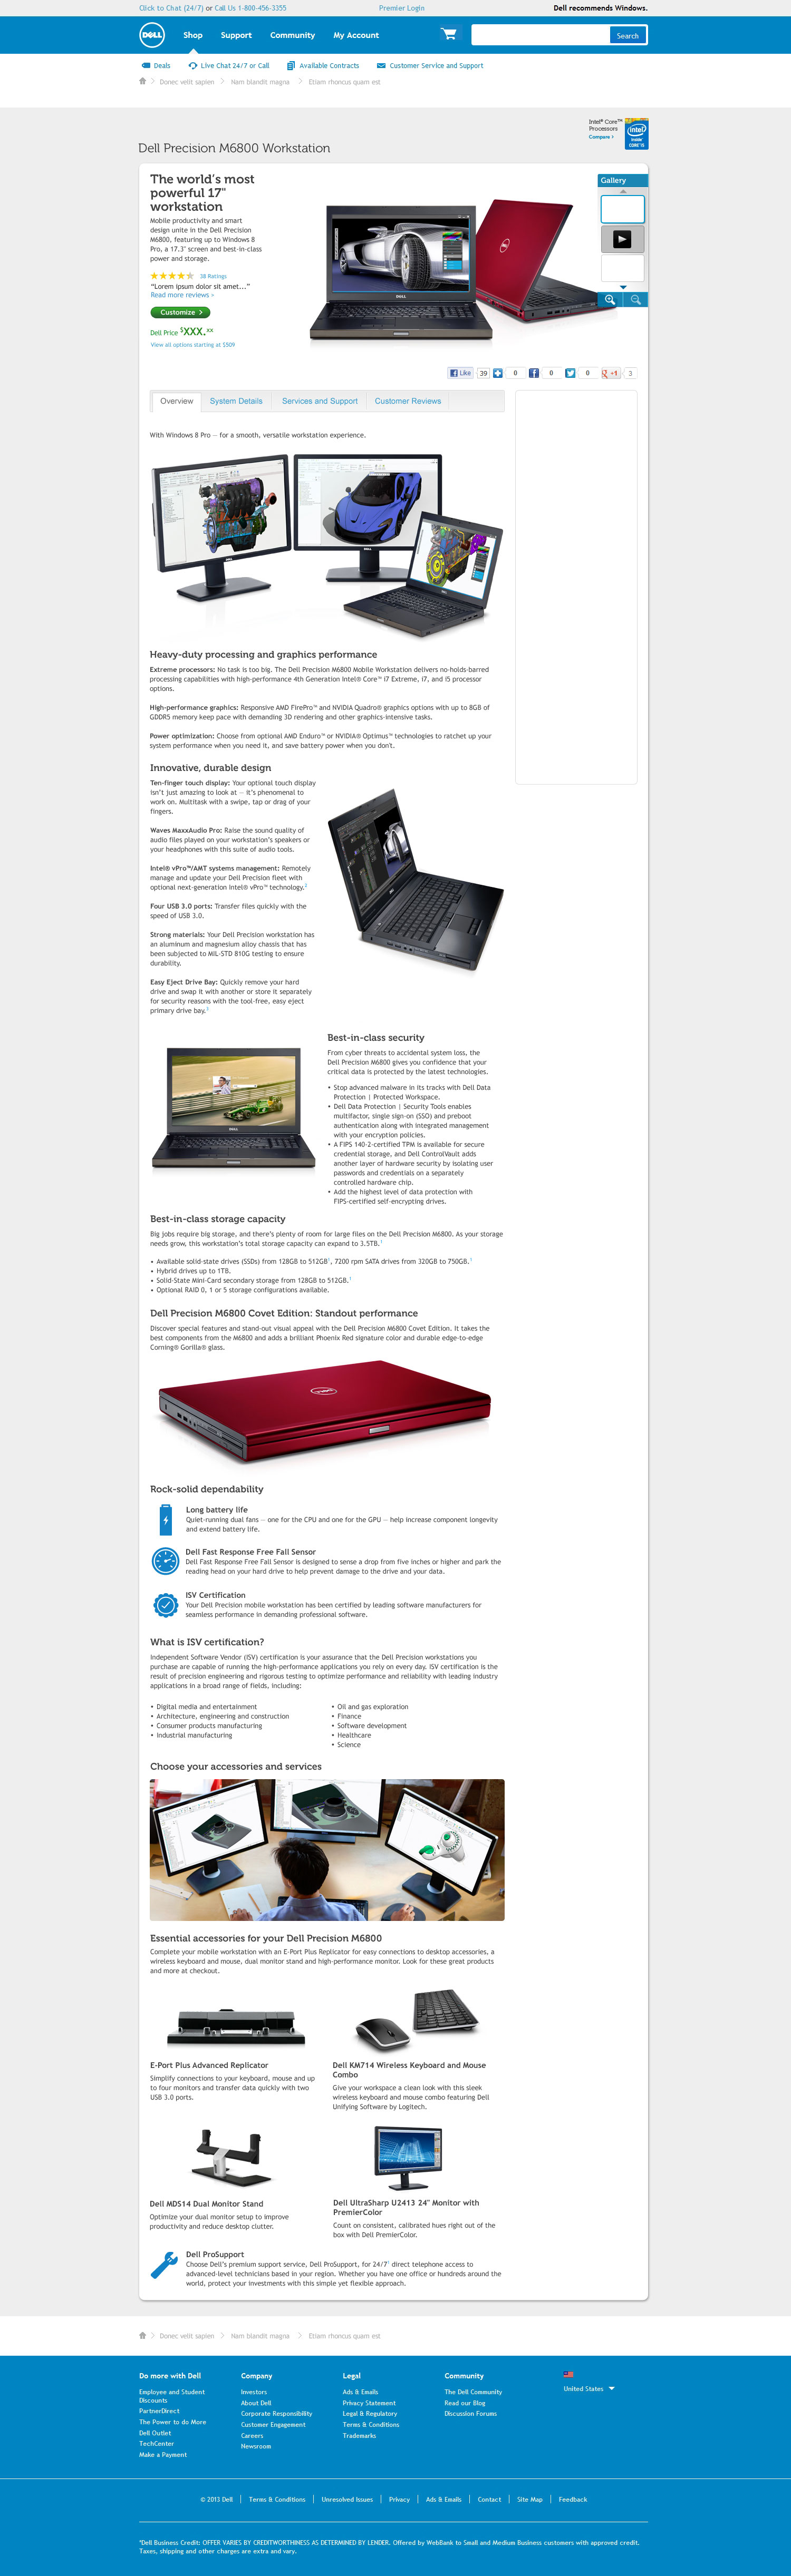 Dell Precision M6800 workstation details page